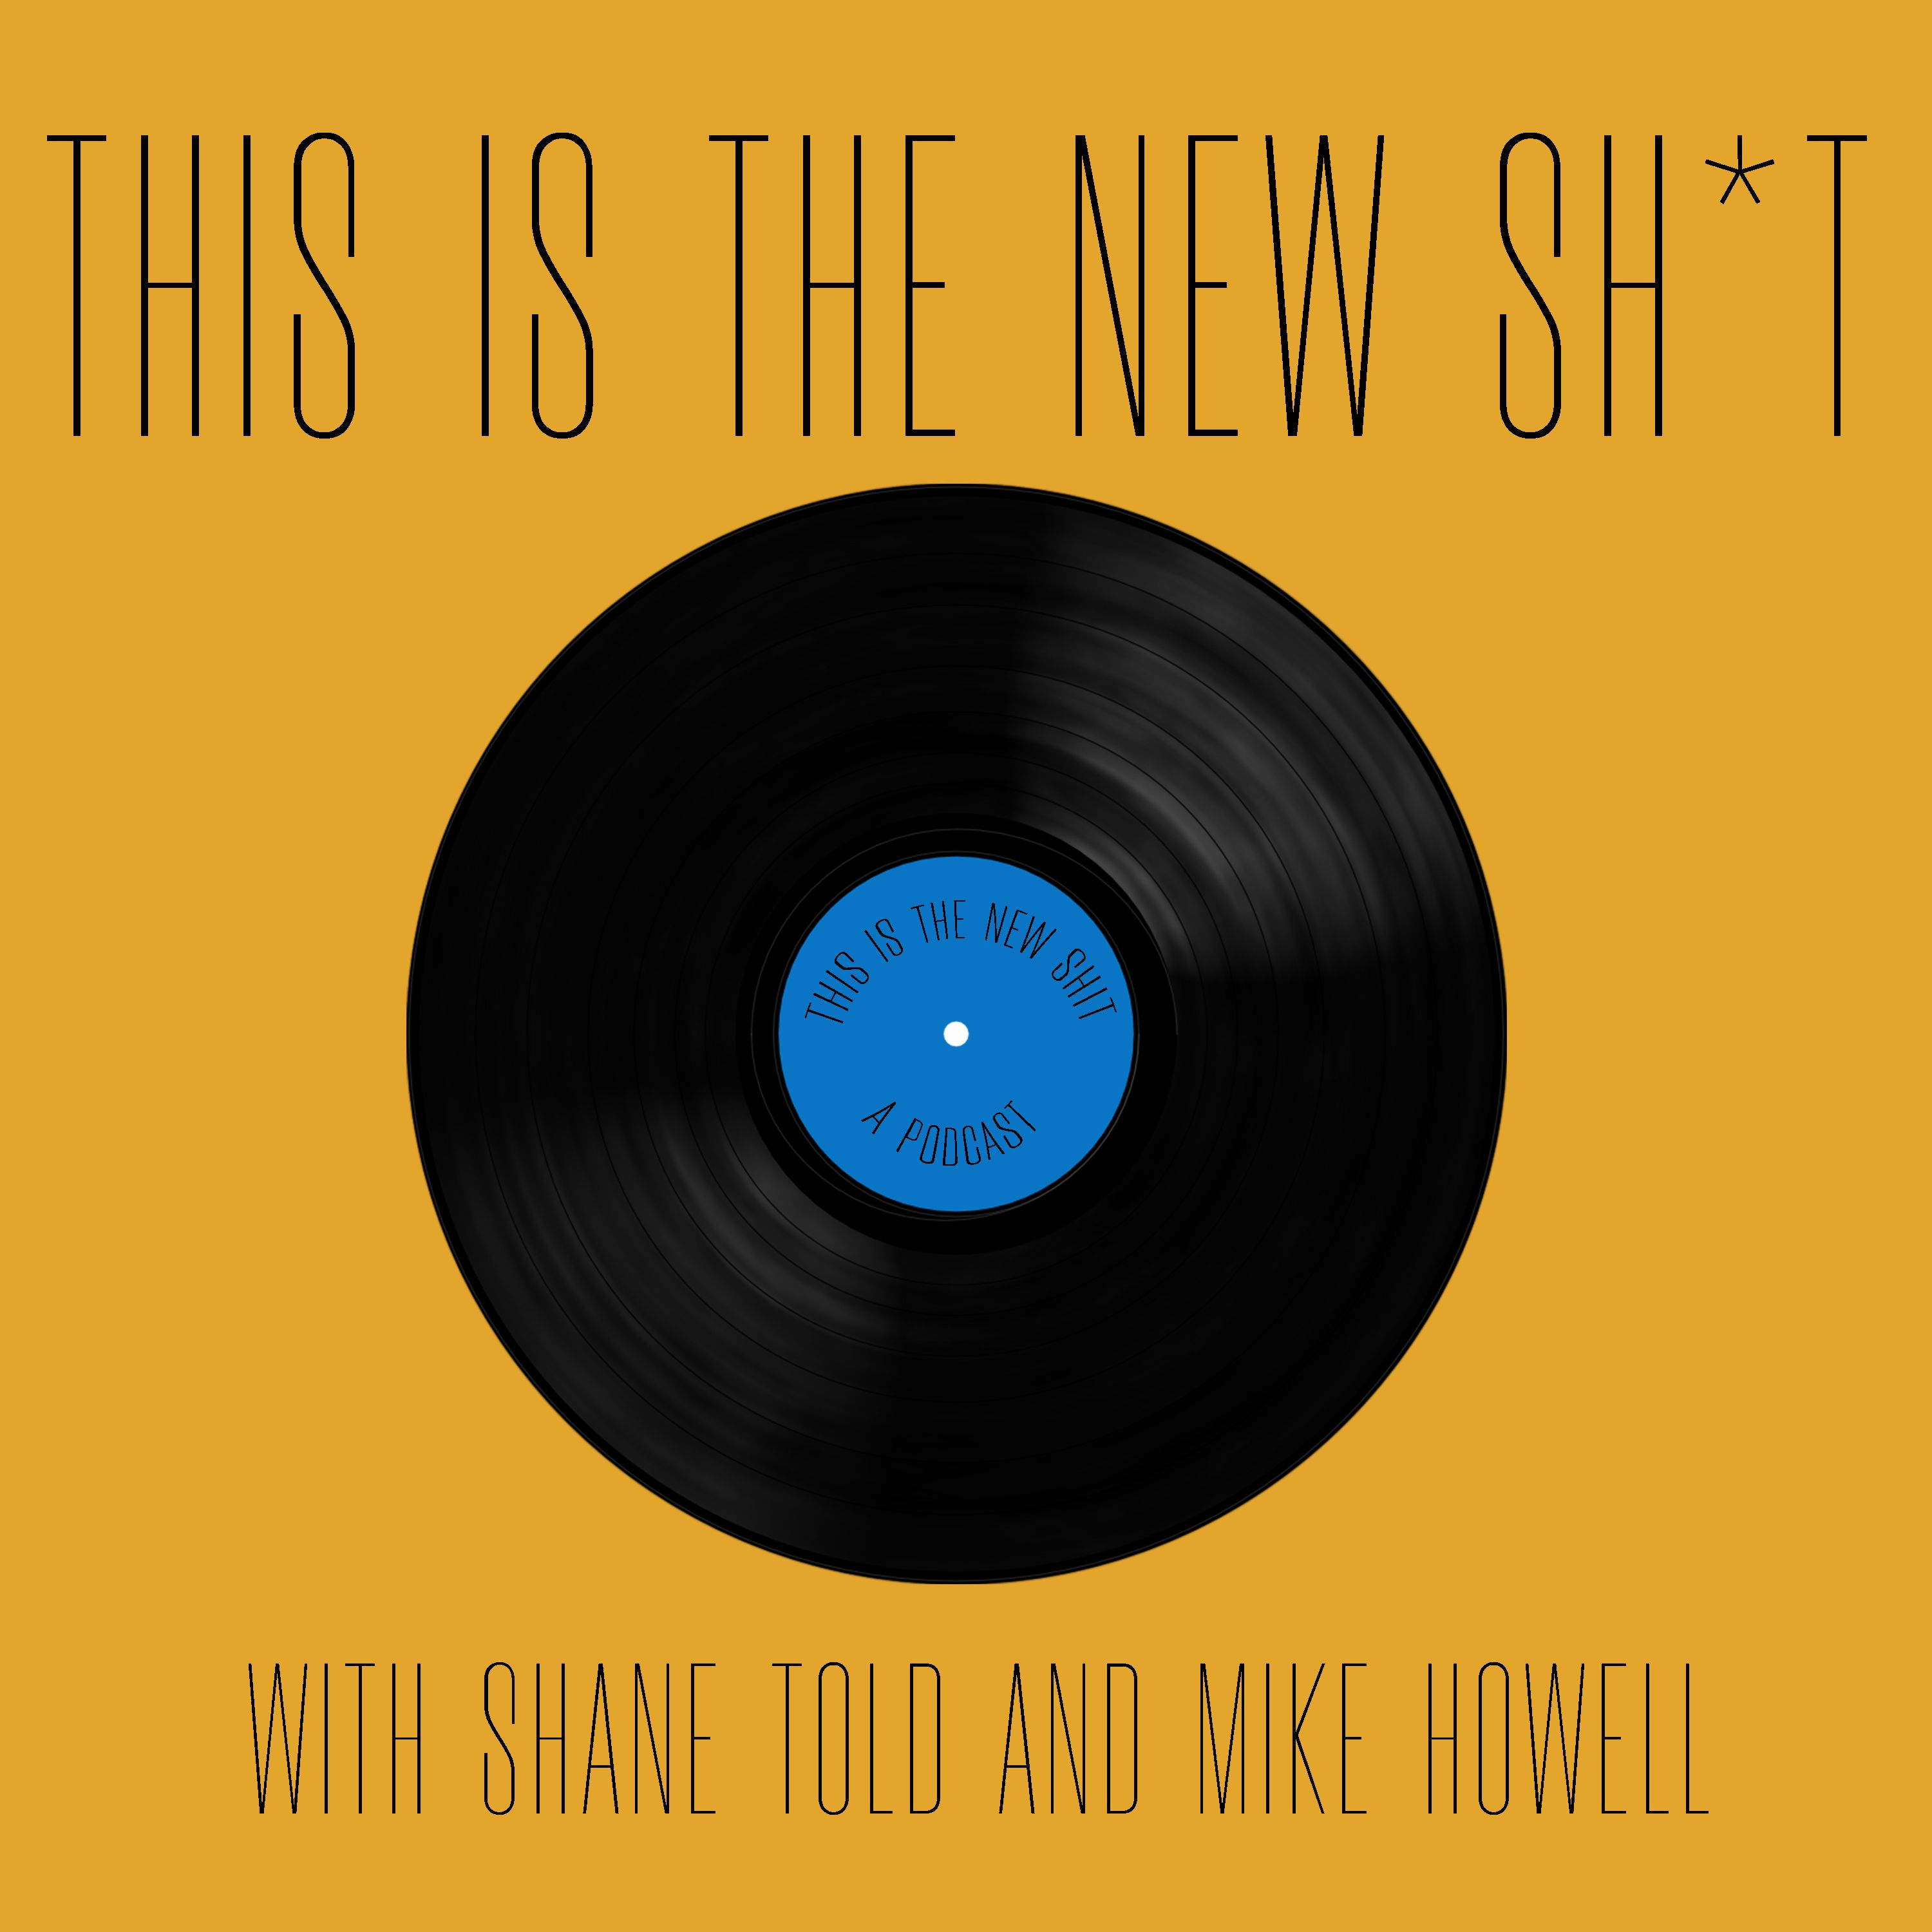 THIS IS THE NEW SH*T:  10.09.2020